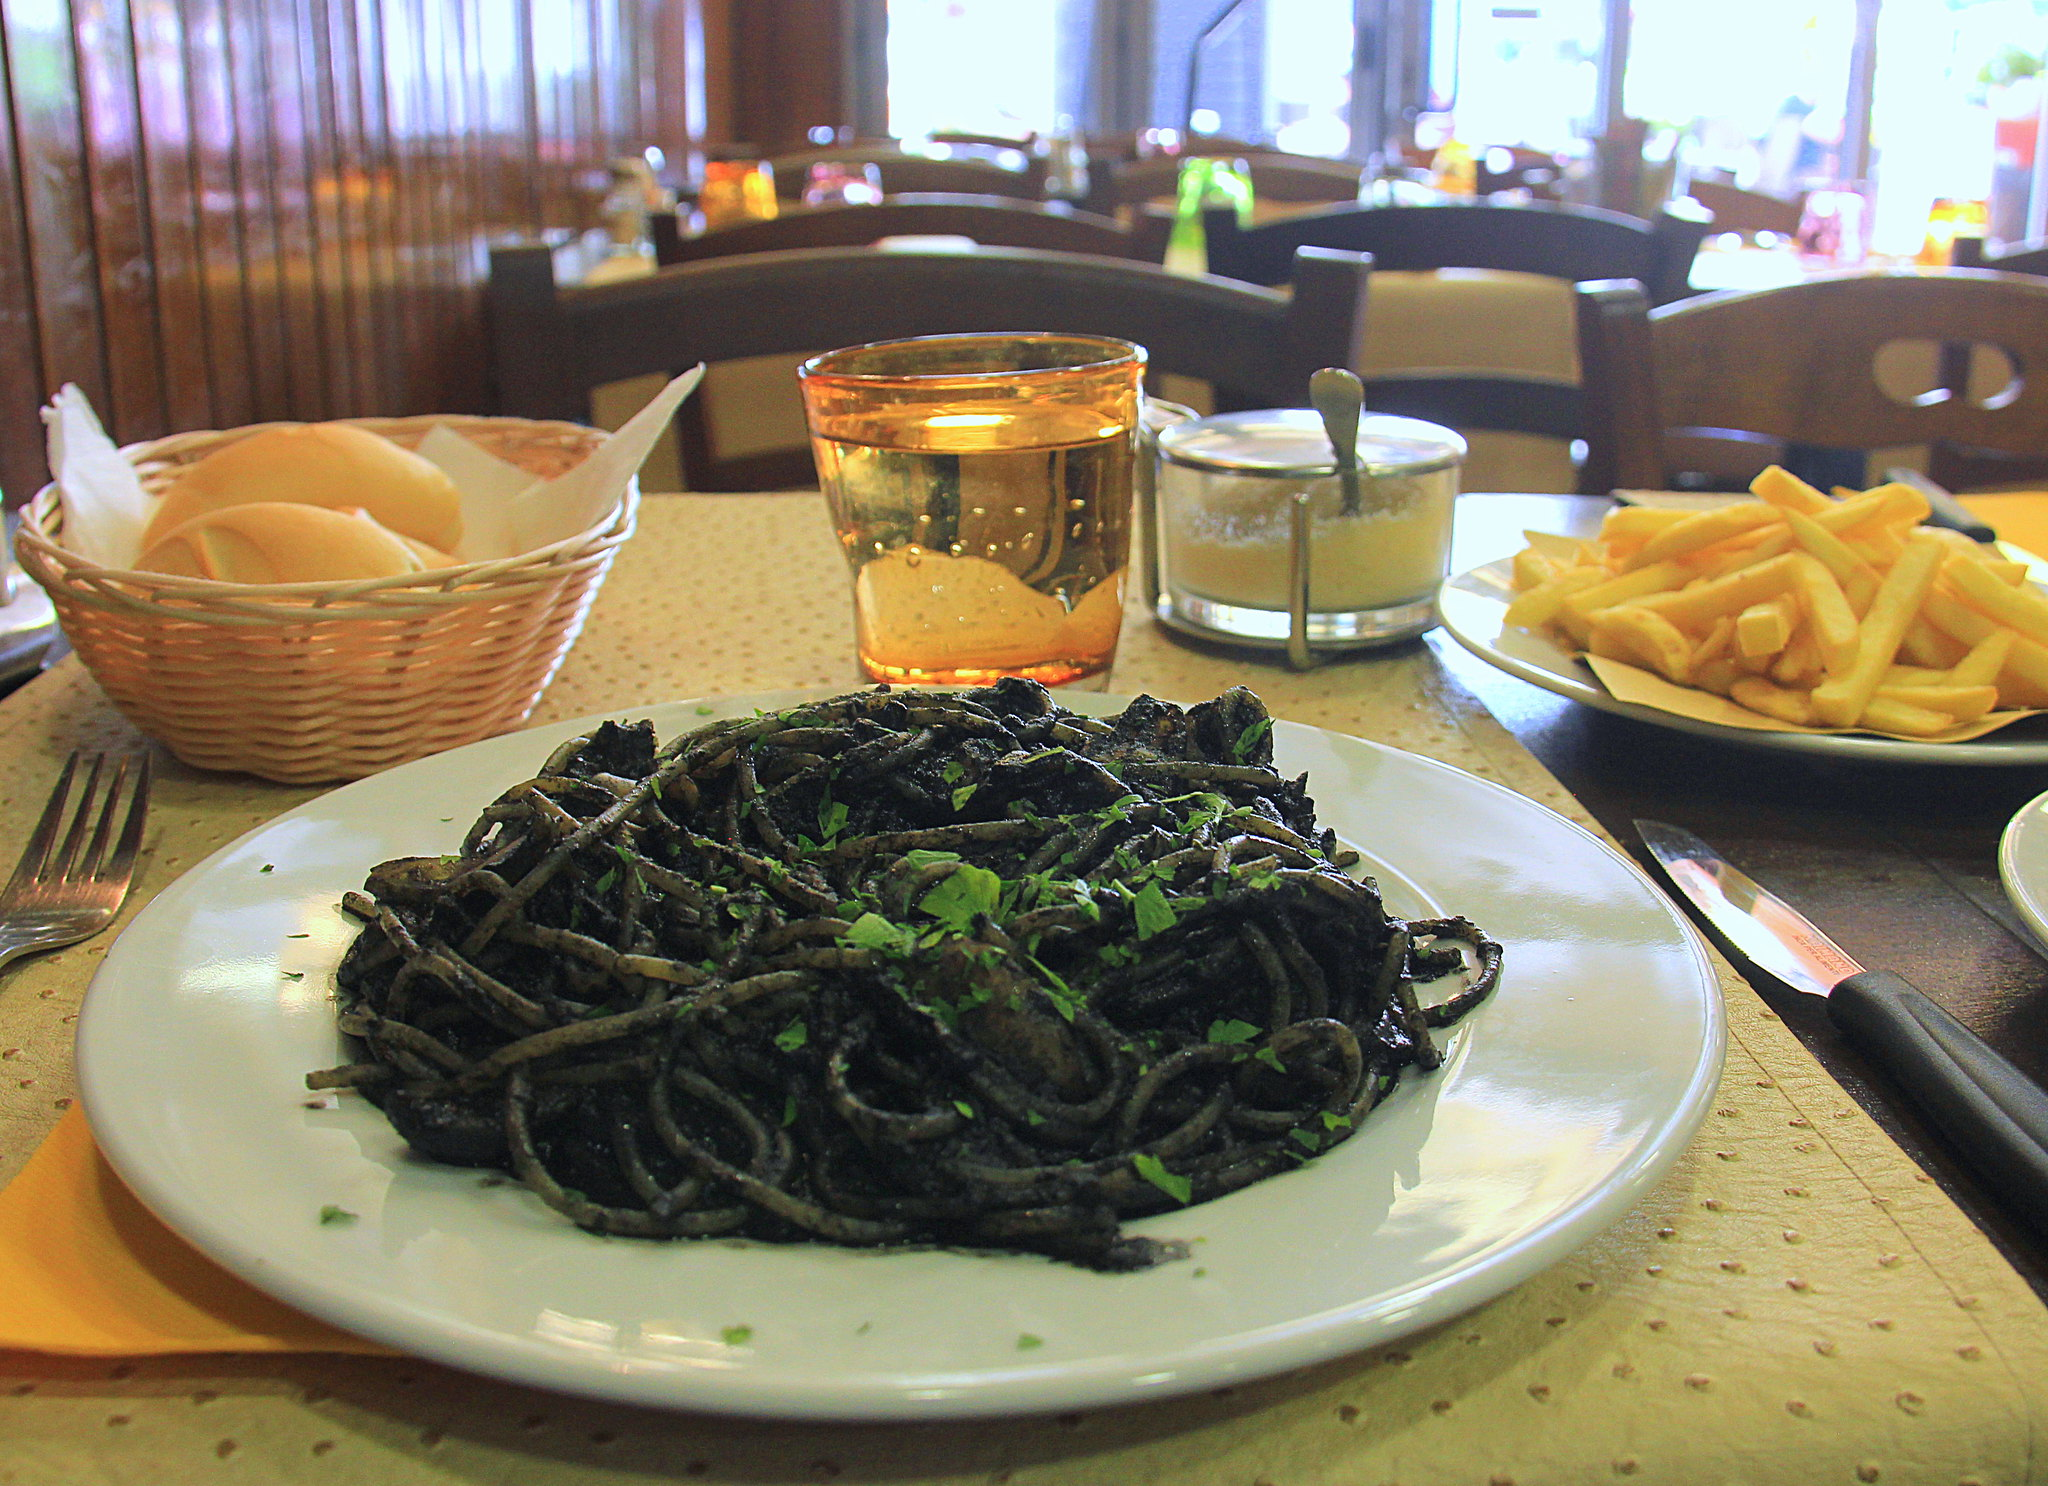 Try the squid ink pasta on your Venice trip